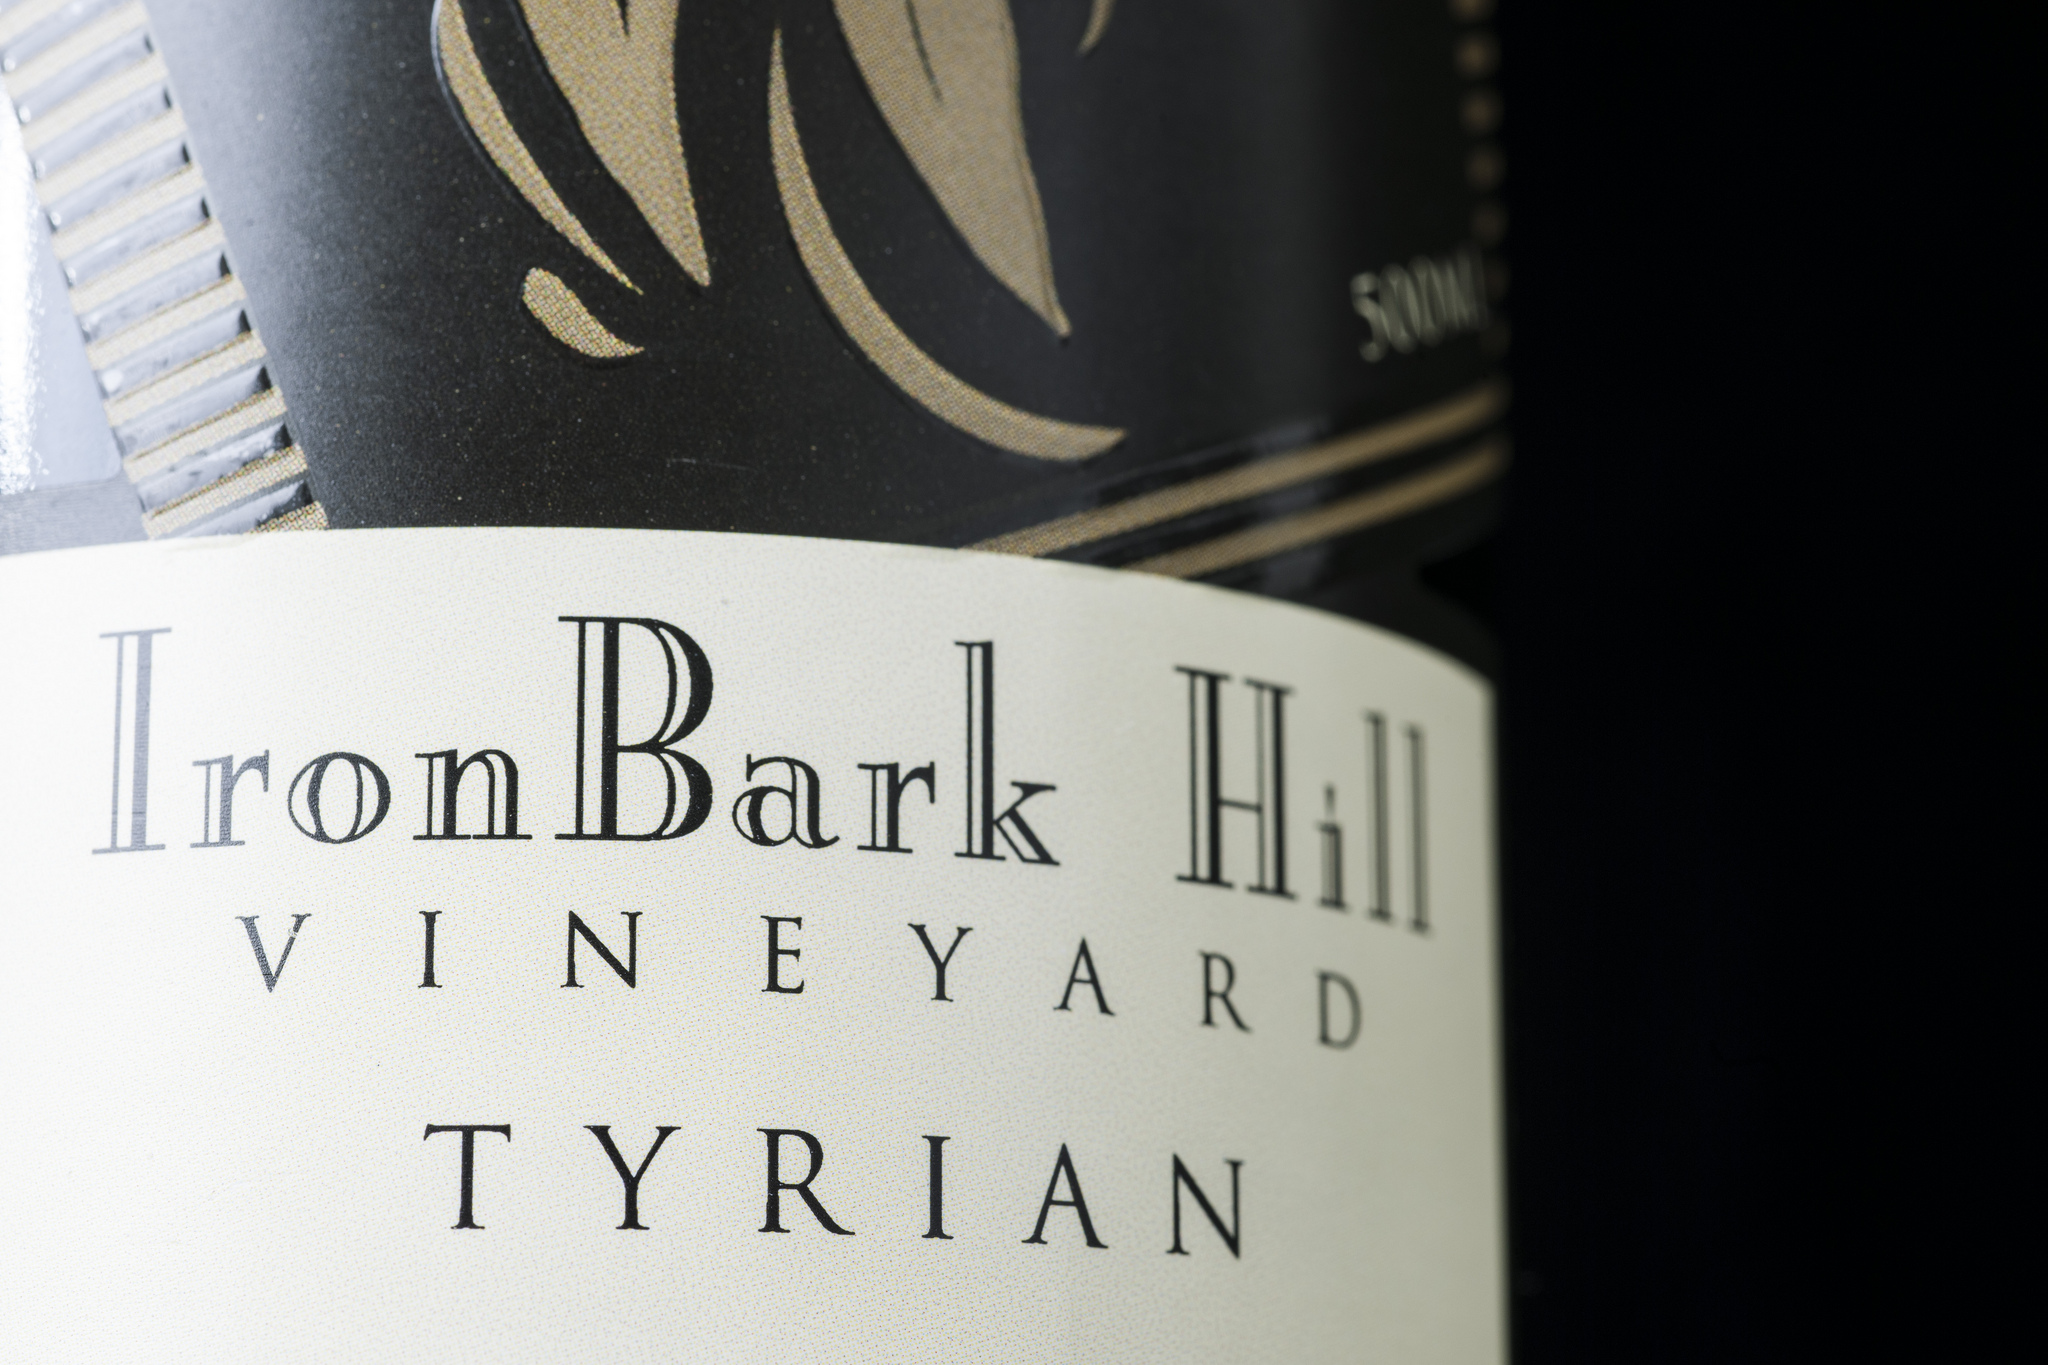 close shot of label on wine bottle - text reads: Ironbark Hill Vineyard, Tyrian.